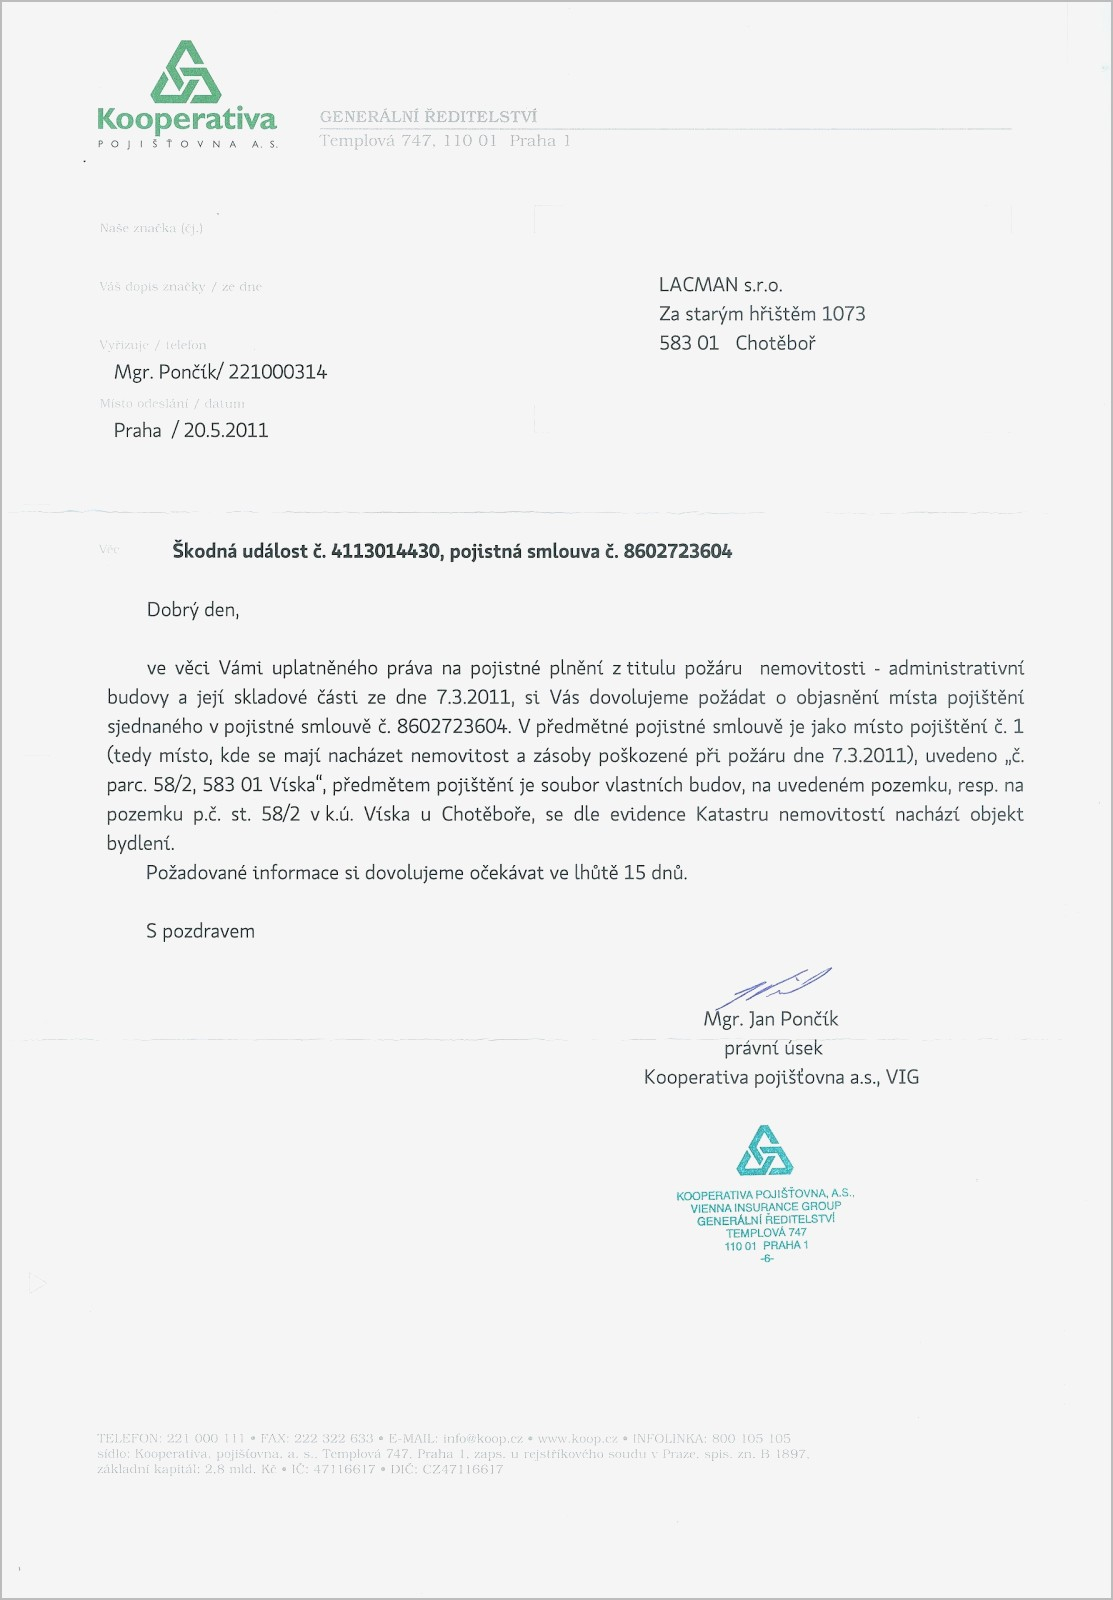 car accident settlement letter template Collection-Car Accident Settlement Agreement Beautiful Excellent Free Car Accident Report S Electrical System Block Ideas 3-c